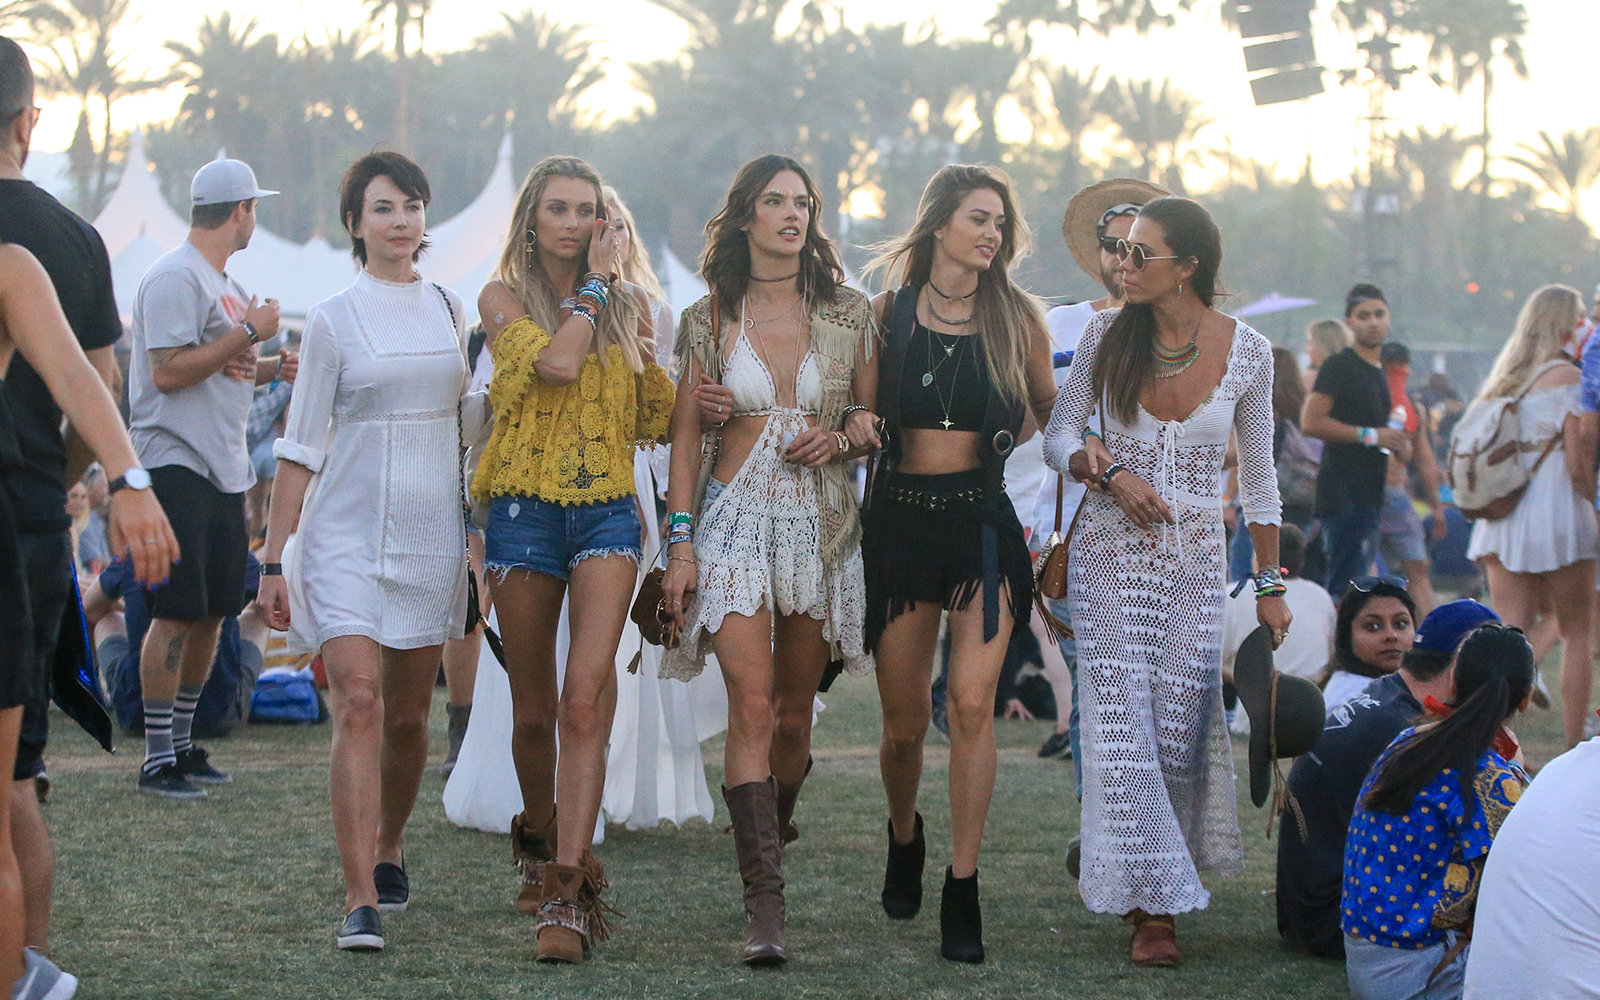 Celebrities at Coachella 2019 Photo Gallery